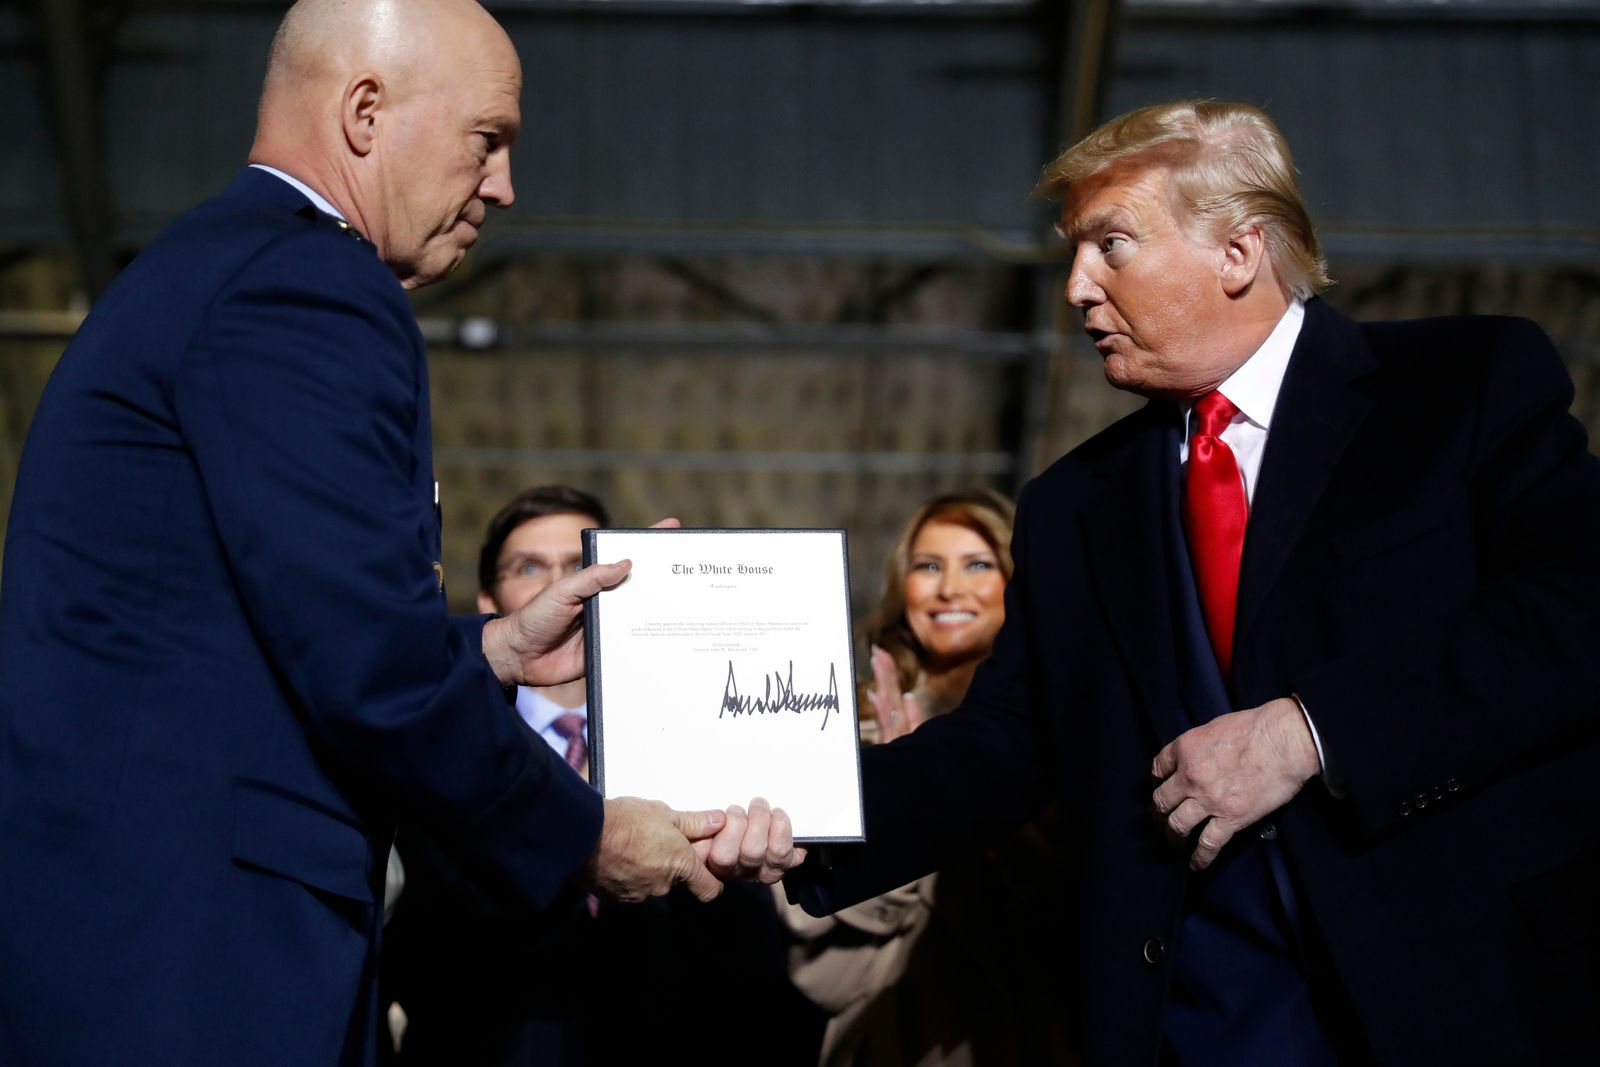 President Donald Trump shakes hands with Gen. Jay Raymond, after signing the letter of his appointment as the chief of space operations for U.S. Space Command during a signing ceremony for the National Defense Authorization Act for Fiscal Year 2020 at Andrews Air Force Base, Md., Friday, Dec. 20, 2019. (AP Photo/Andrew Harnik)